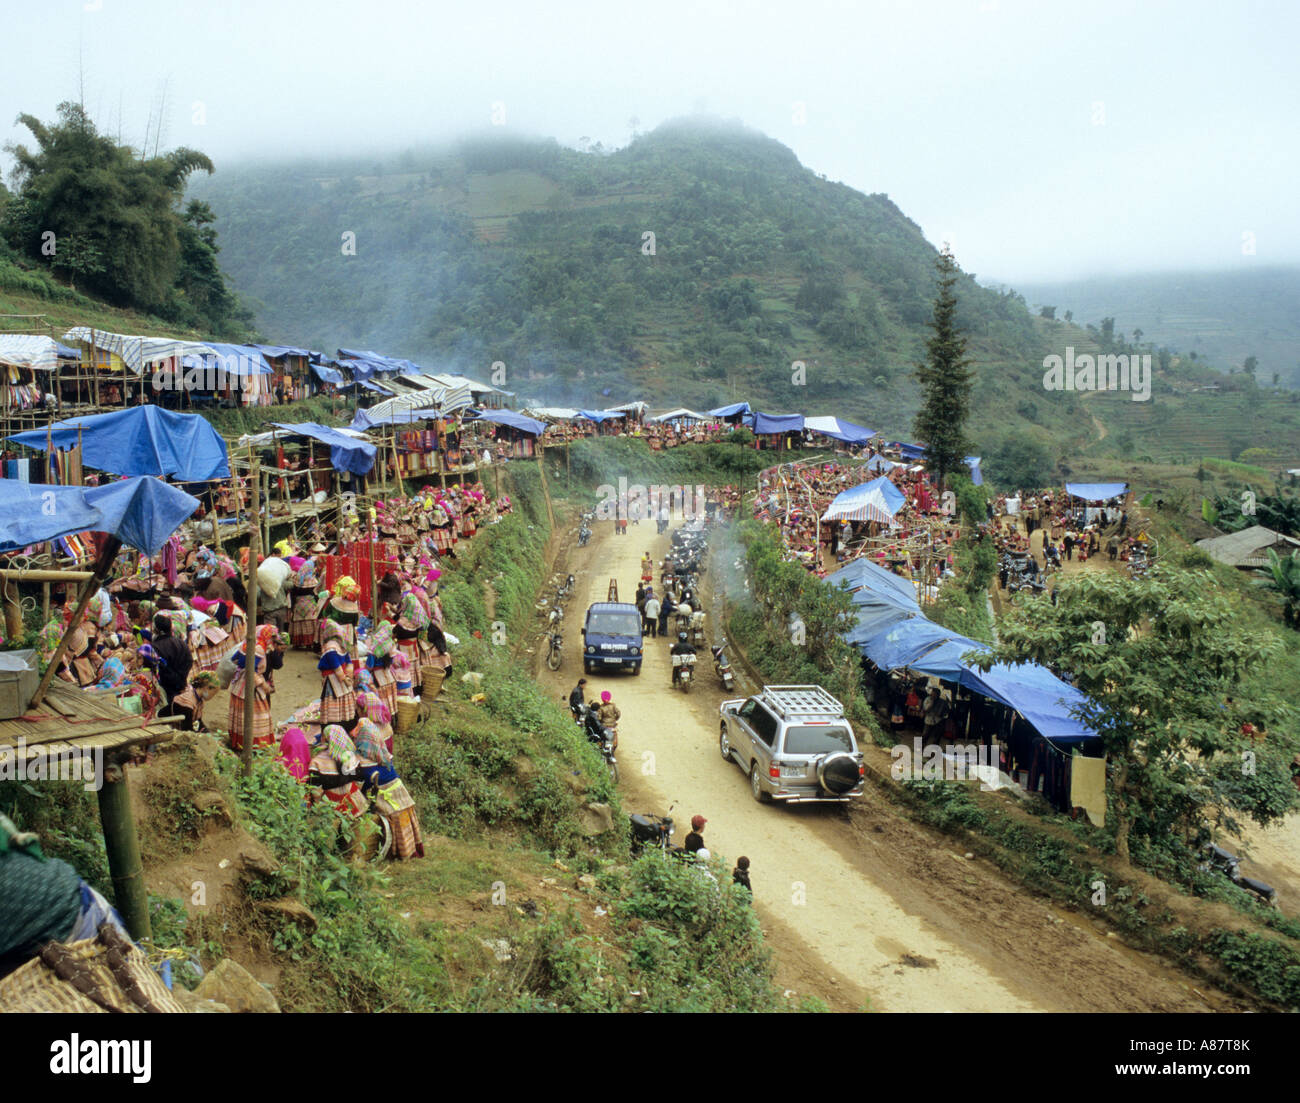 The Flower Hmong Saturday market on a hillside, Can Cau, NW Viet Nam Stock Photo